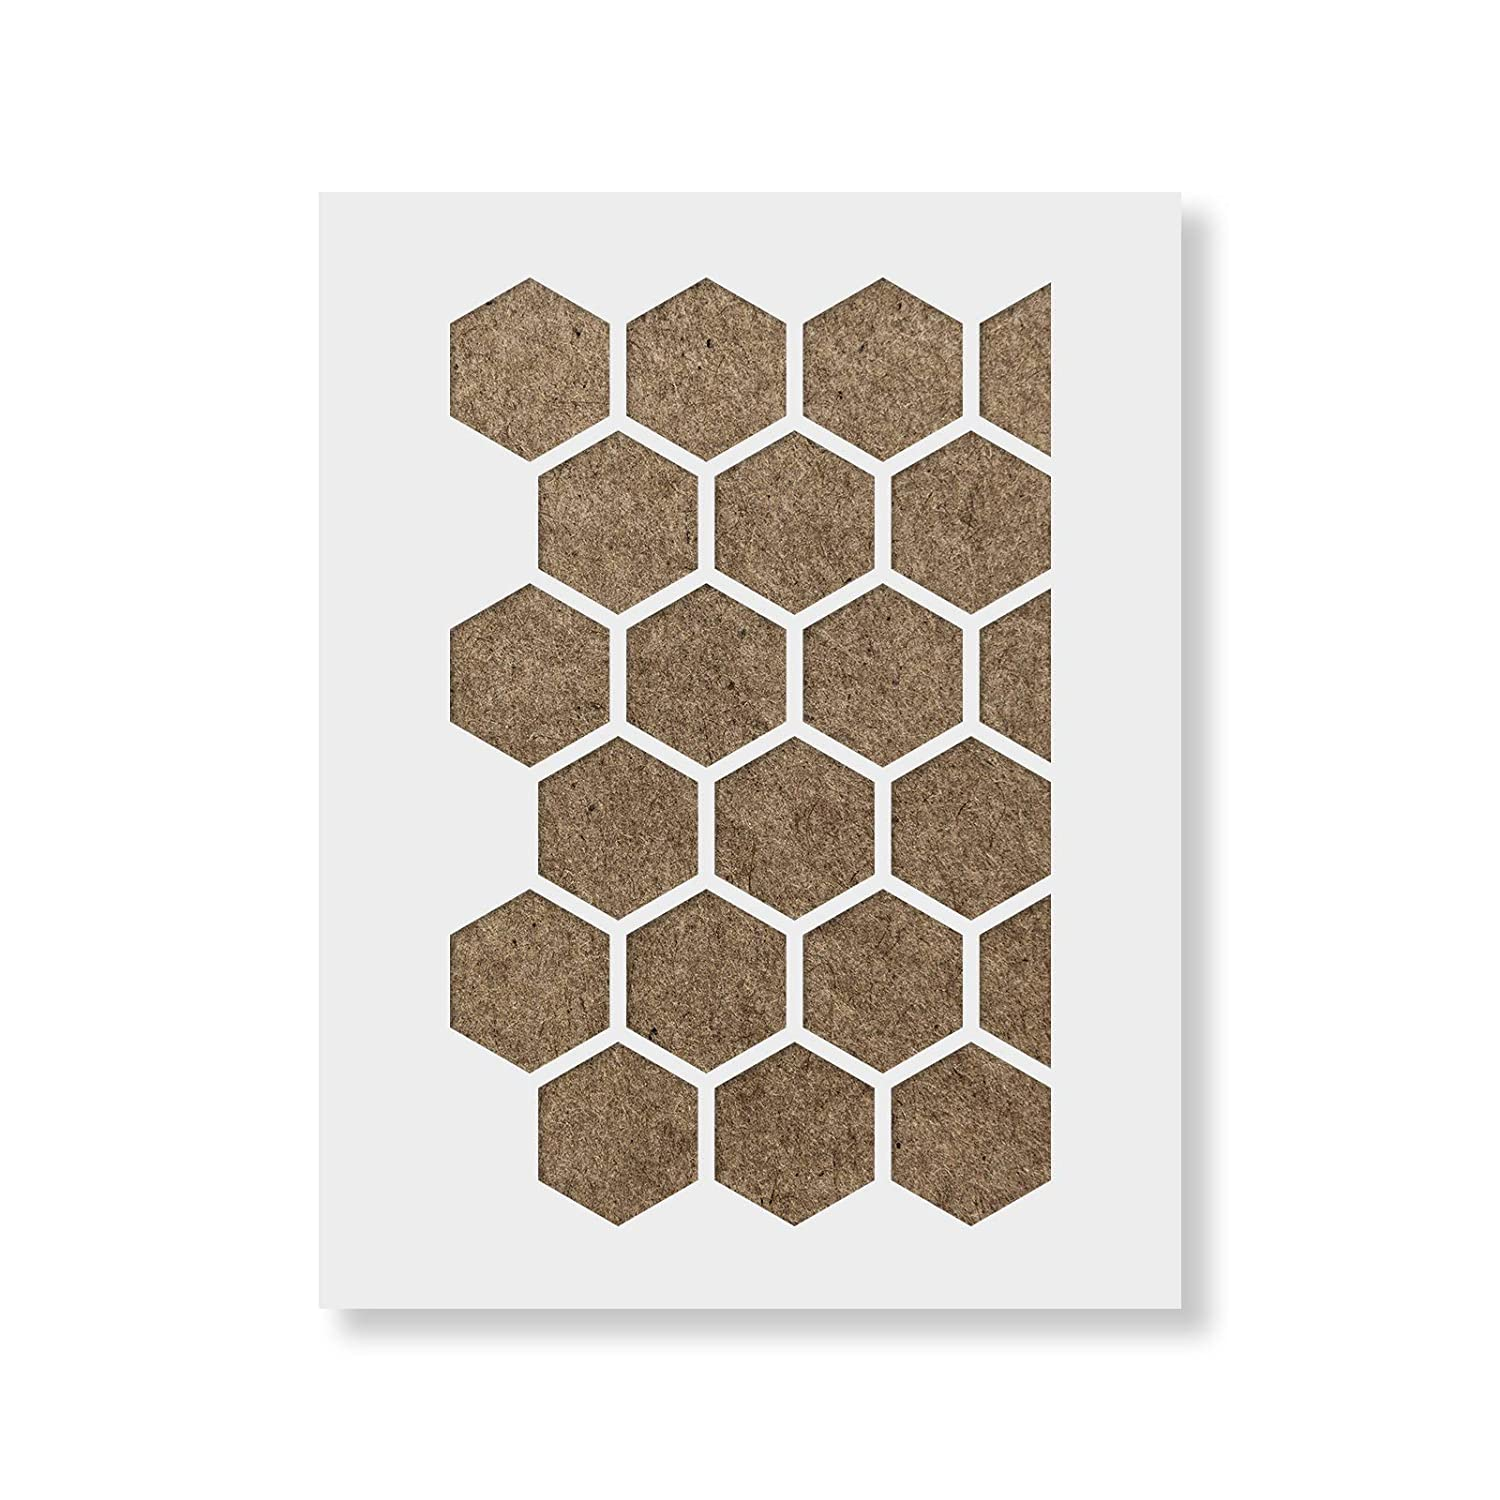 33.5 x 21 Honeycomb Stencil Reusable Wall Stencil Pattern for Home Decor Design Size